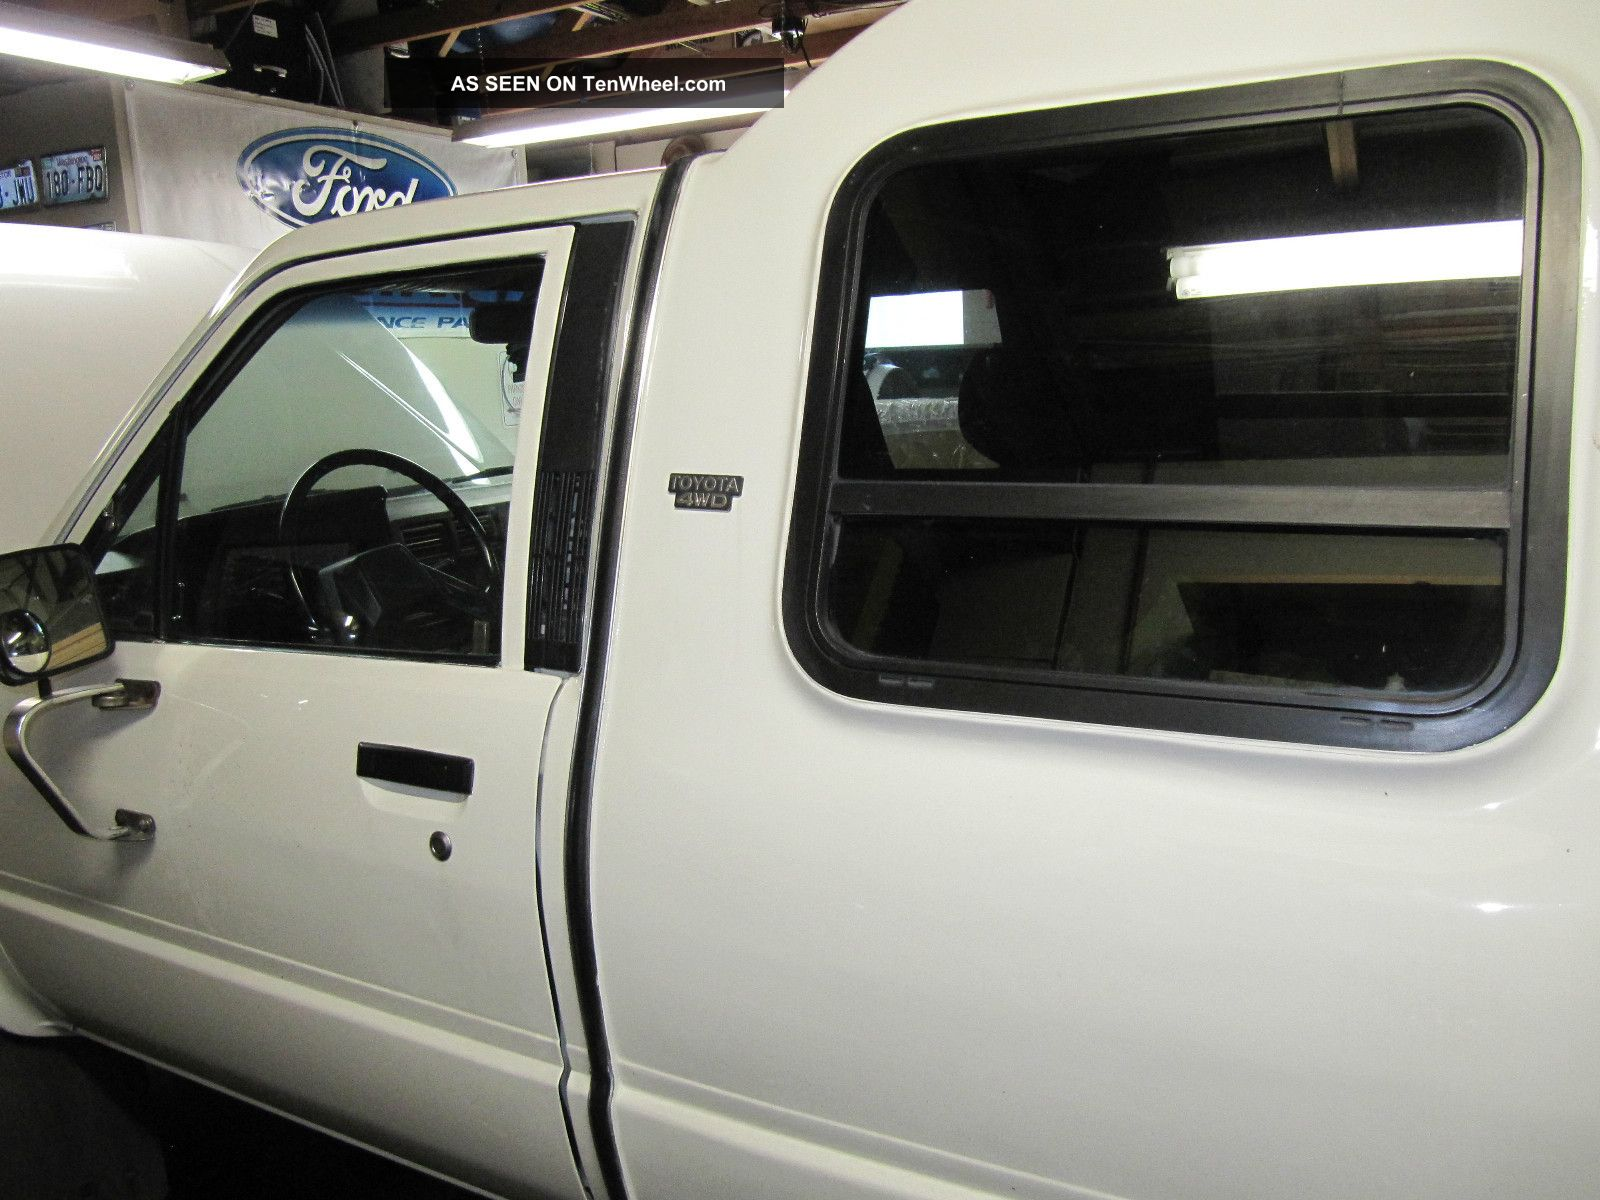 1986 Toyota Custom Cab Pickup Engine Paint Tires Exc.  Cond. Tacoma photo